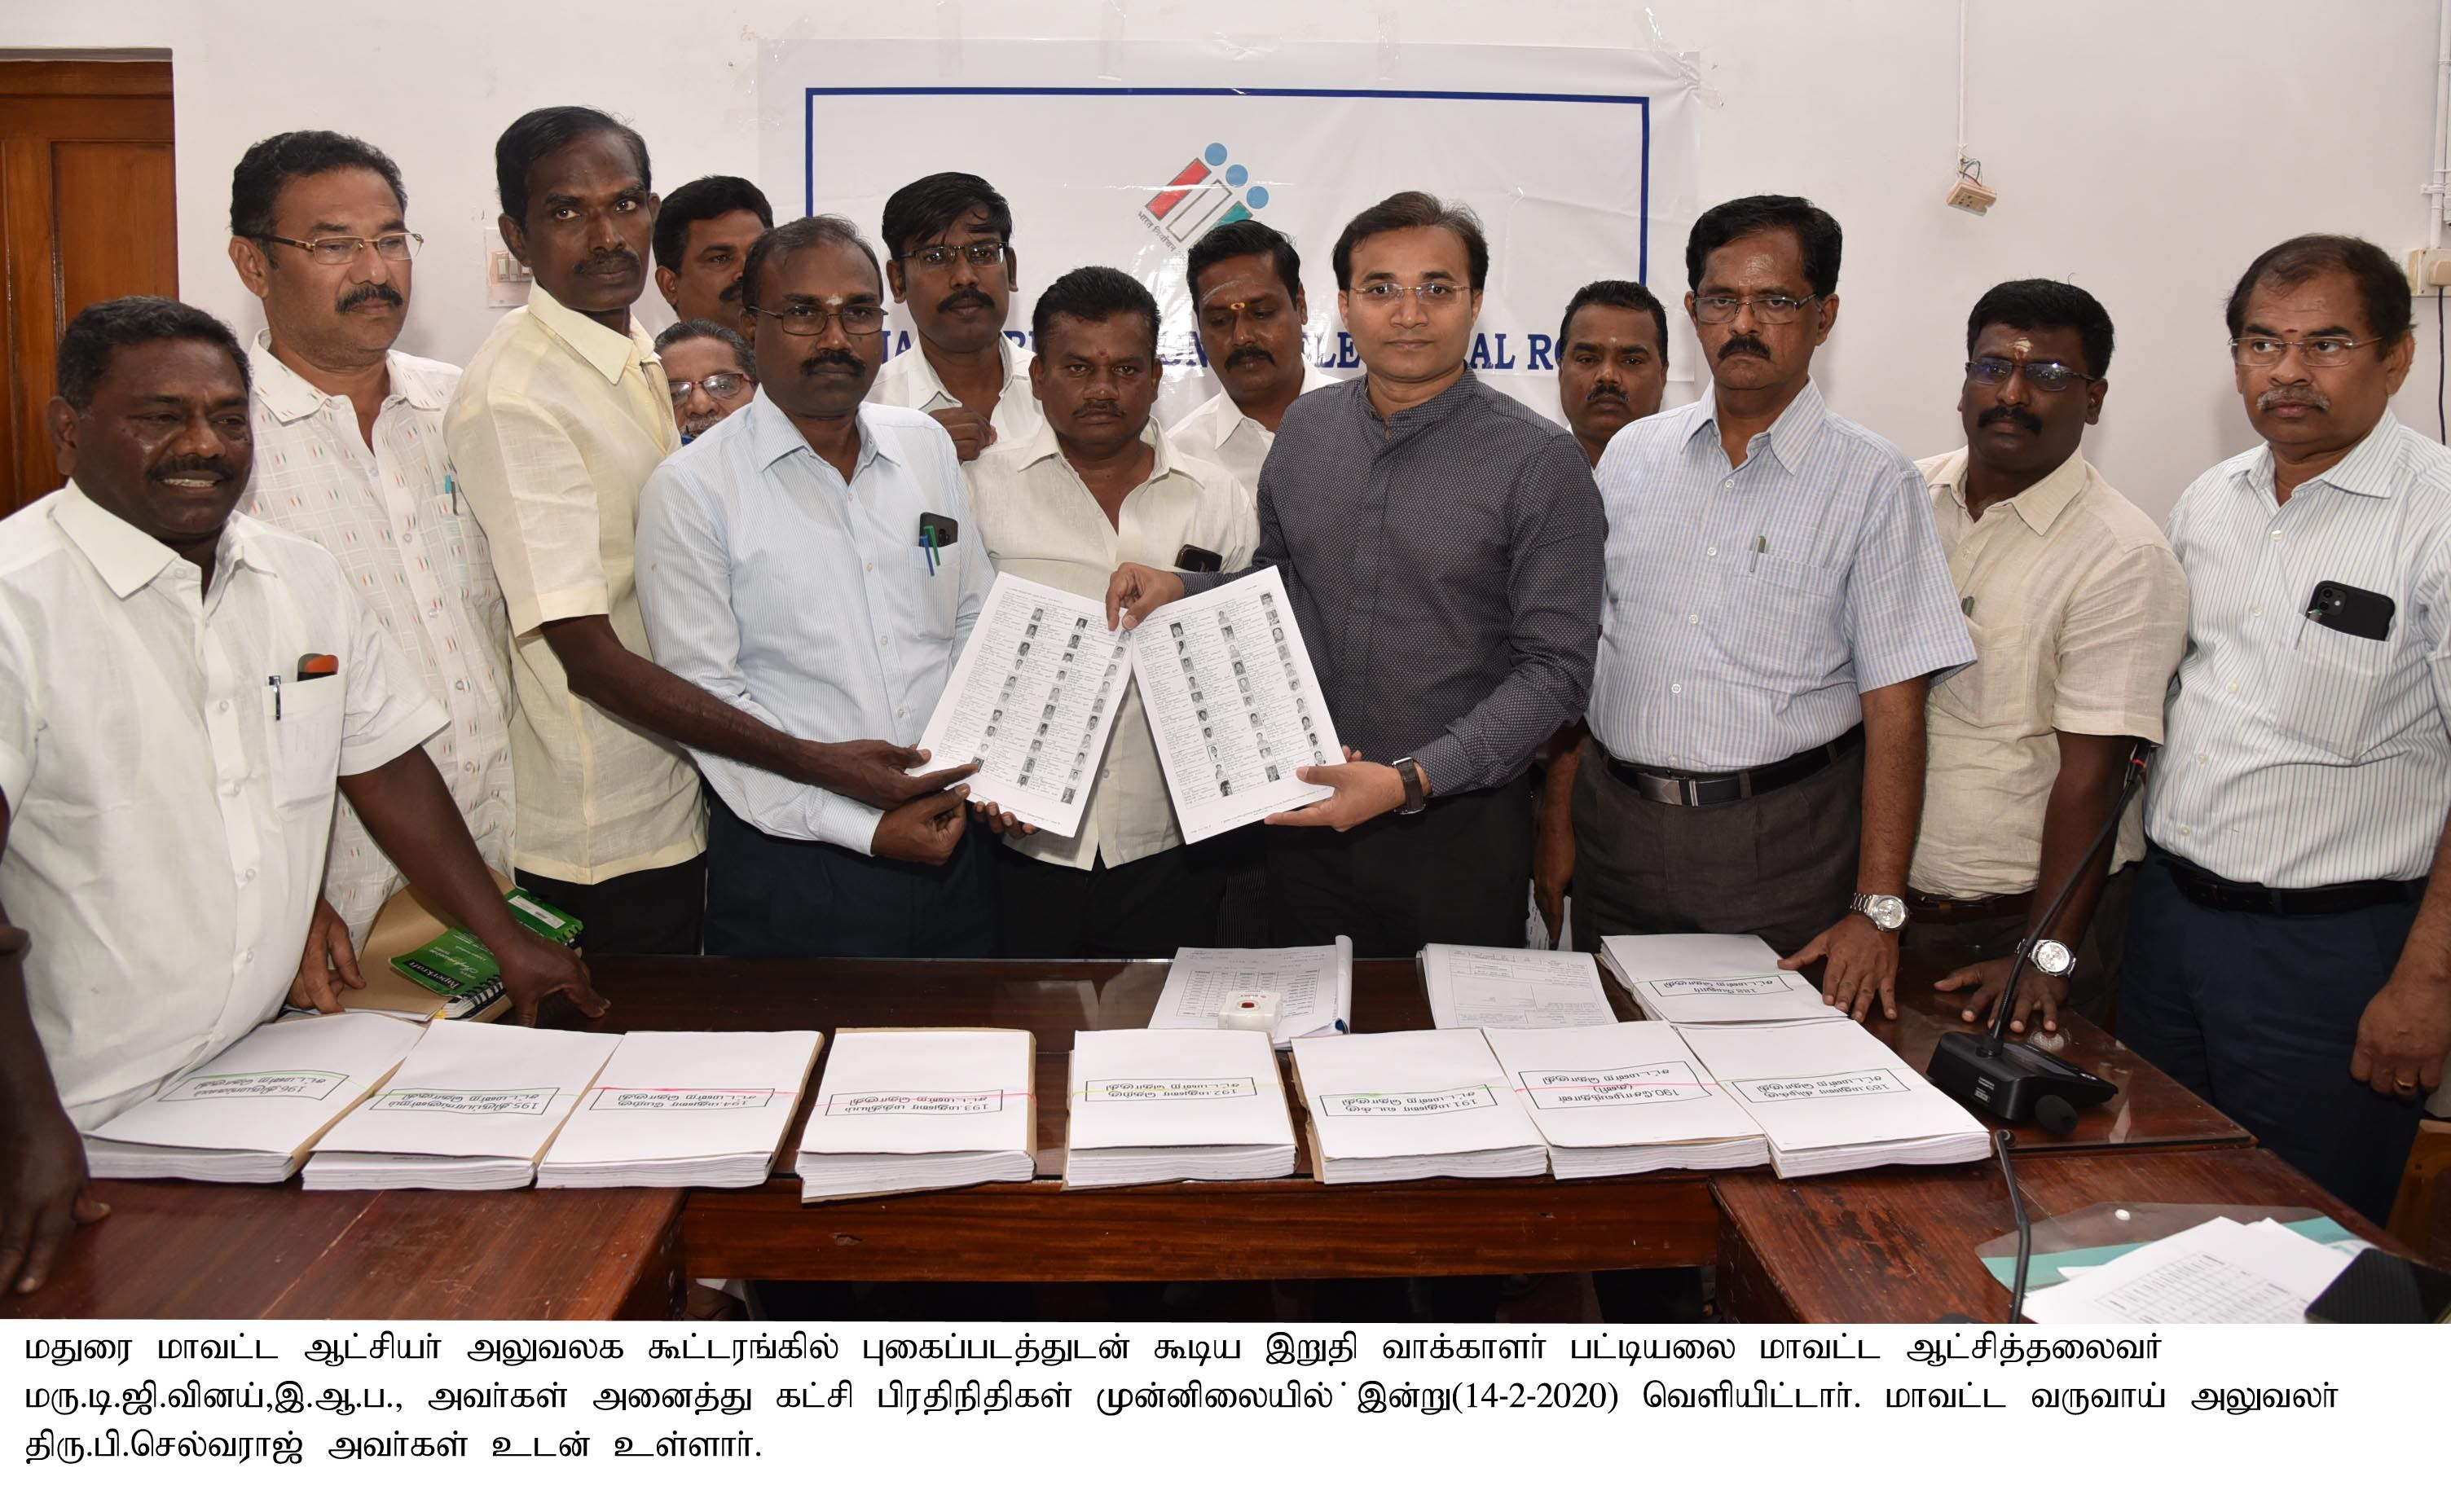 Madurai - Final publication of Electoral Roll 14.02.2020